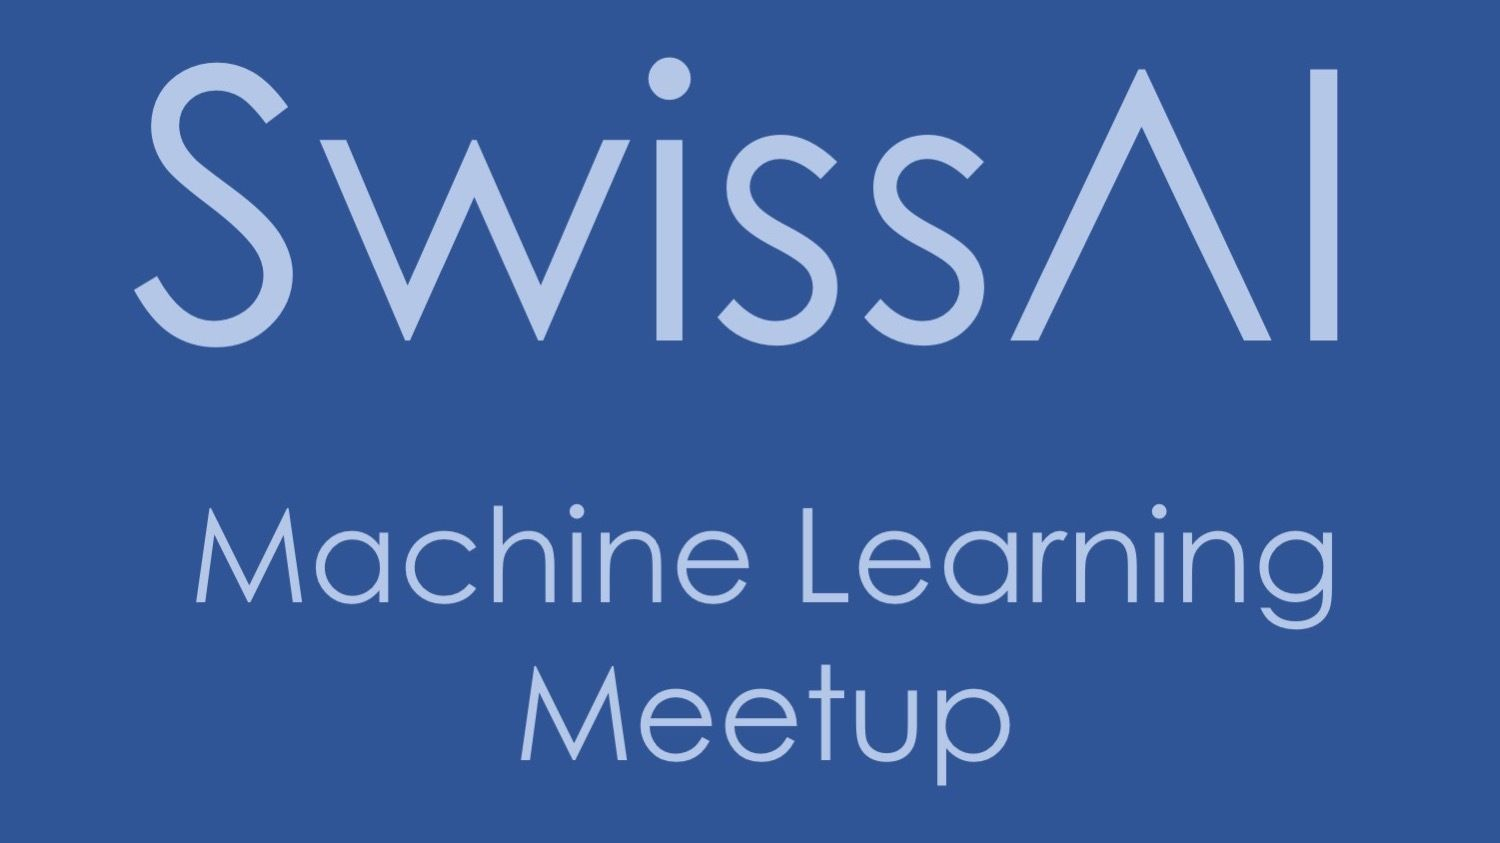 SwissAI Machine Learning Meetup